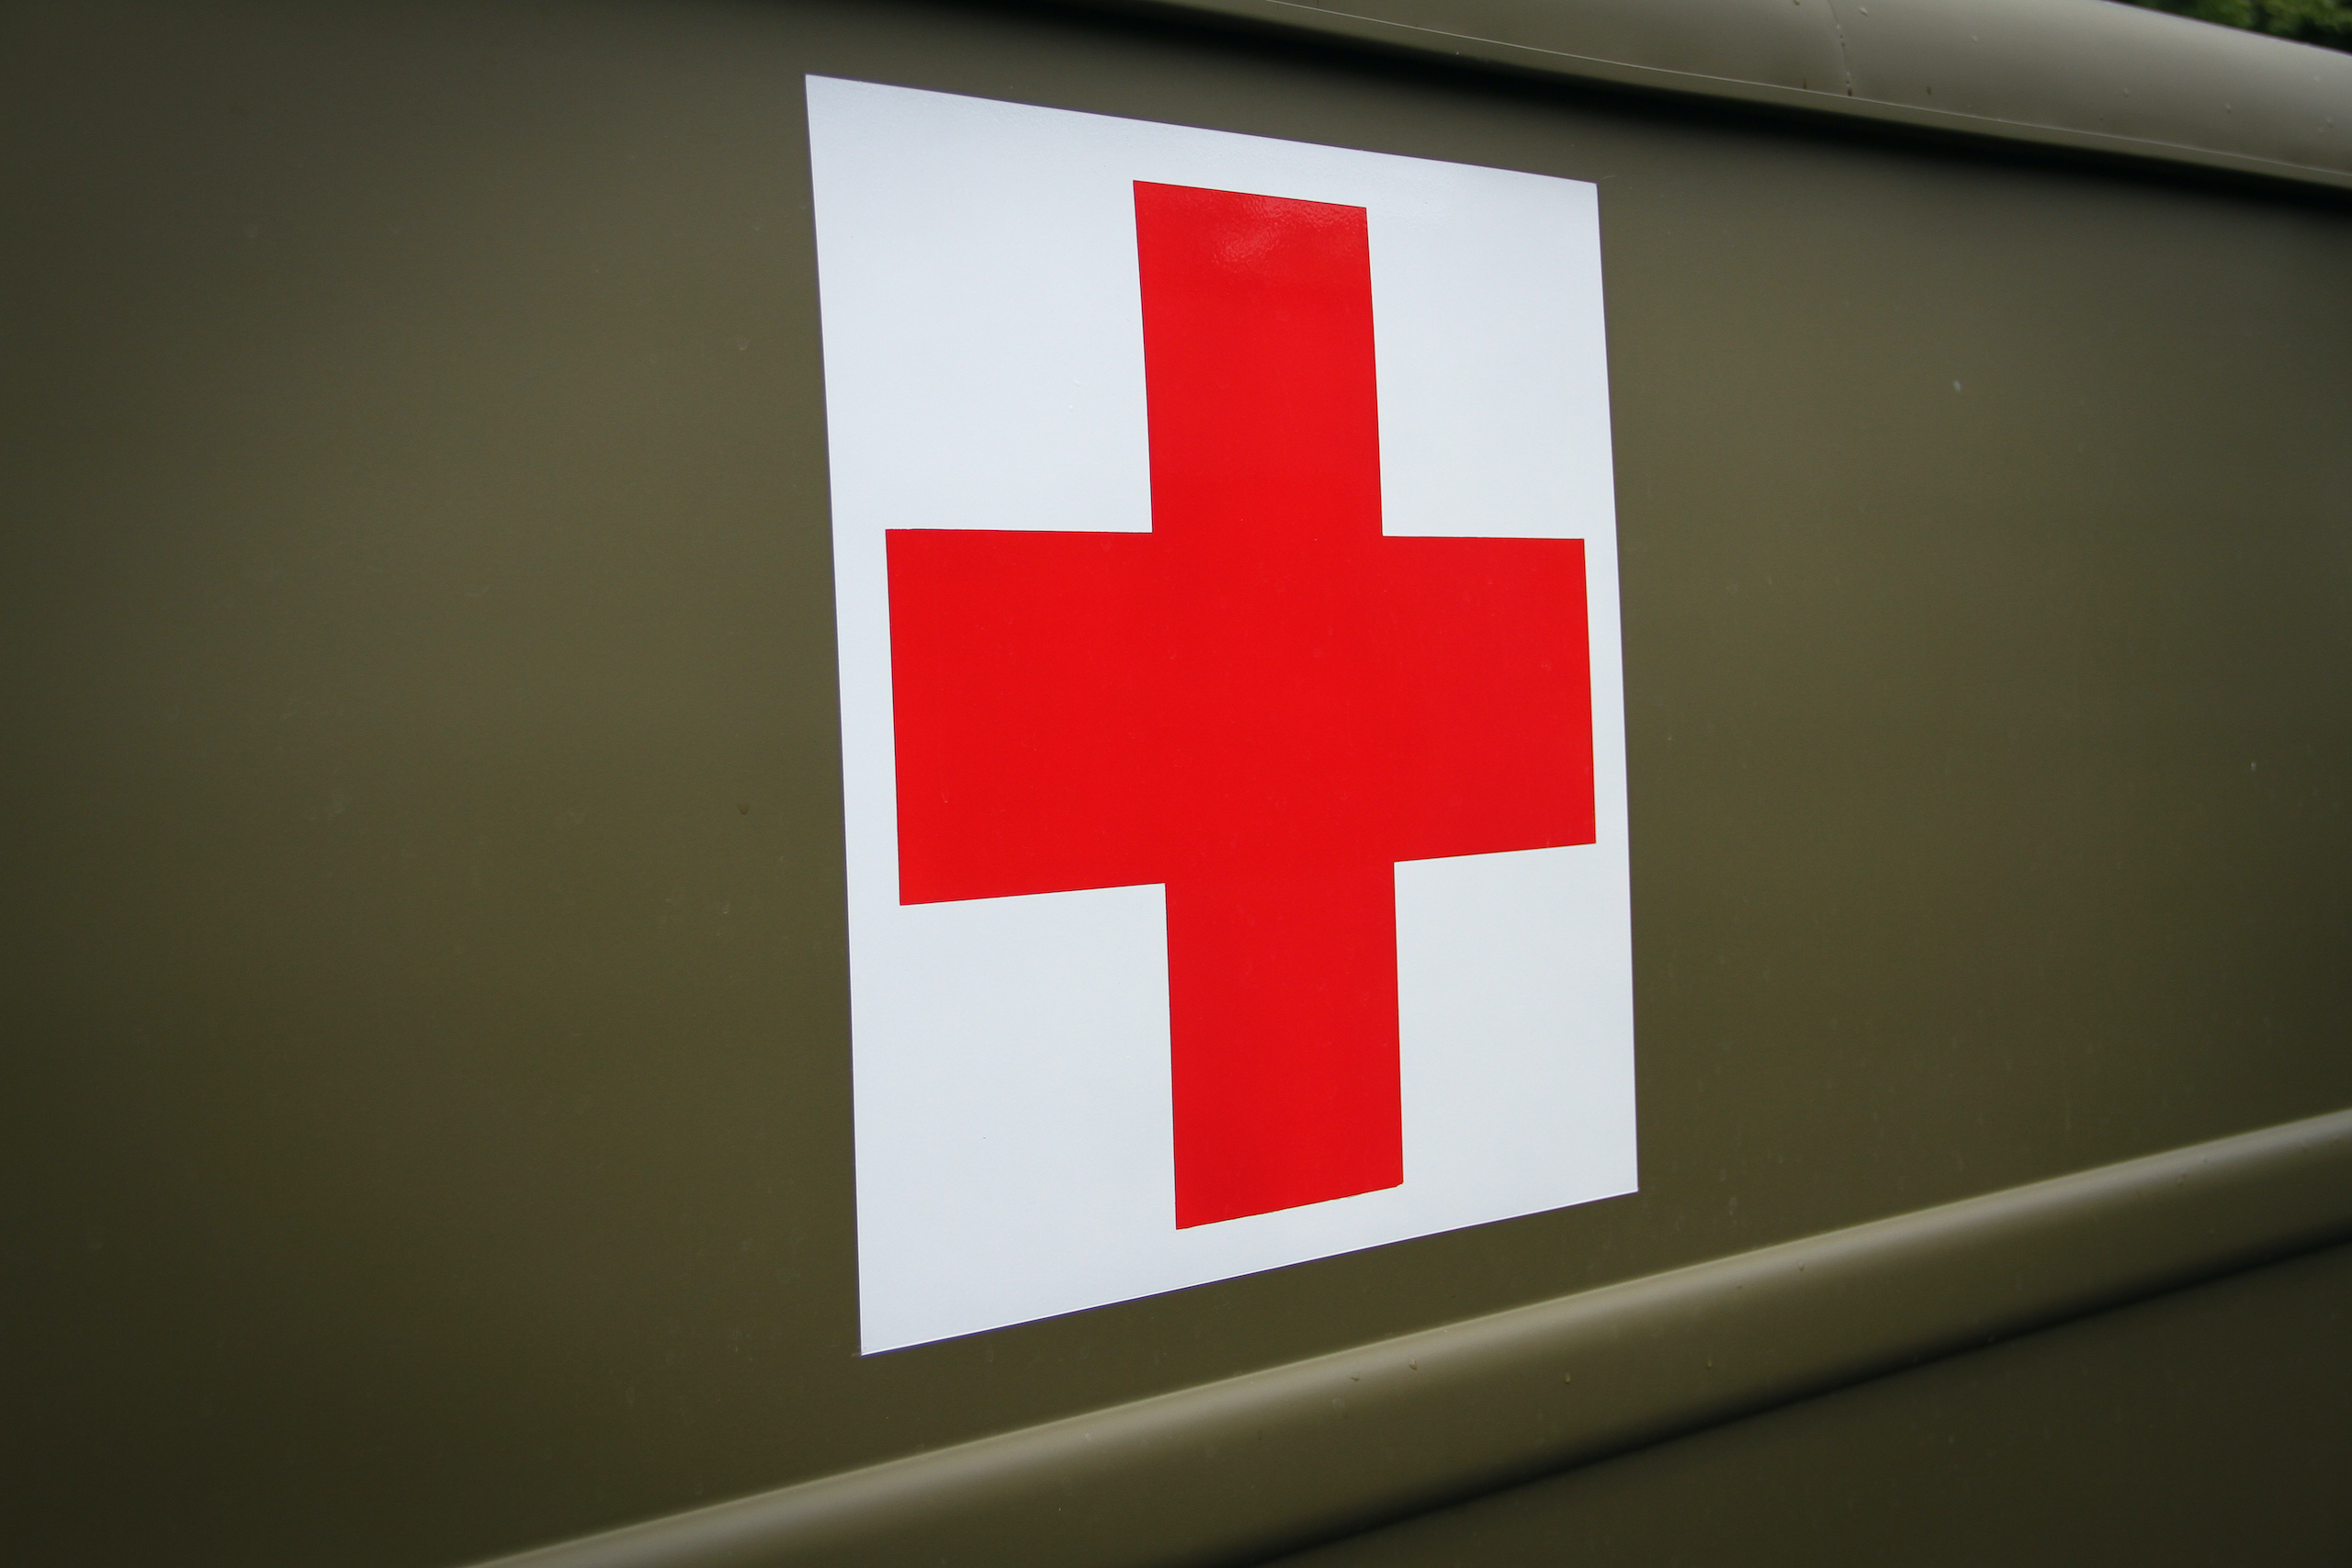 Military vehicle convoy red cross